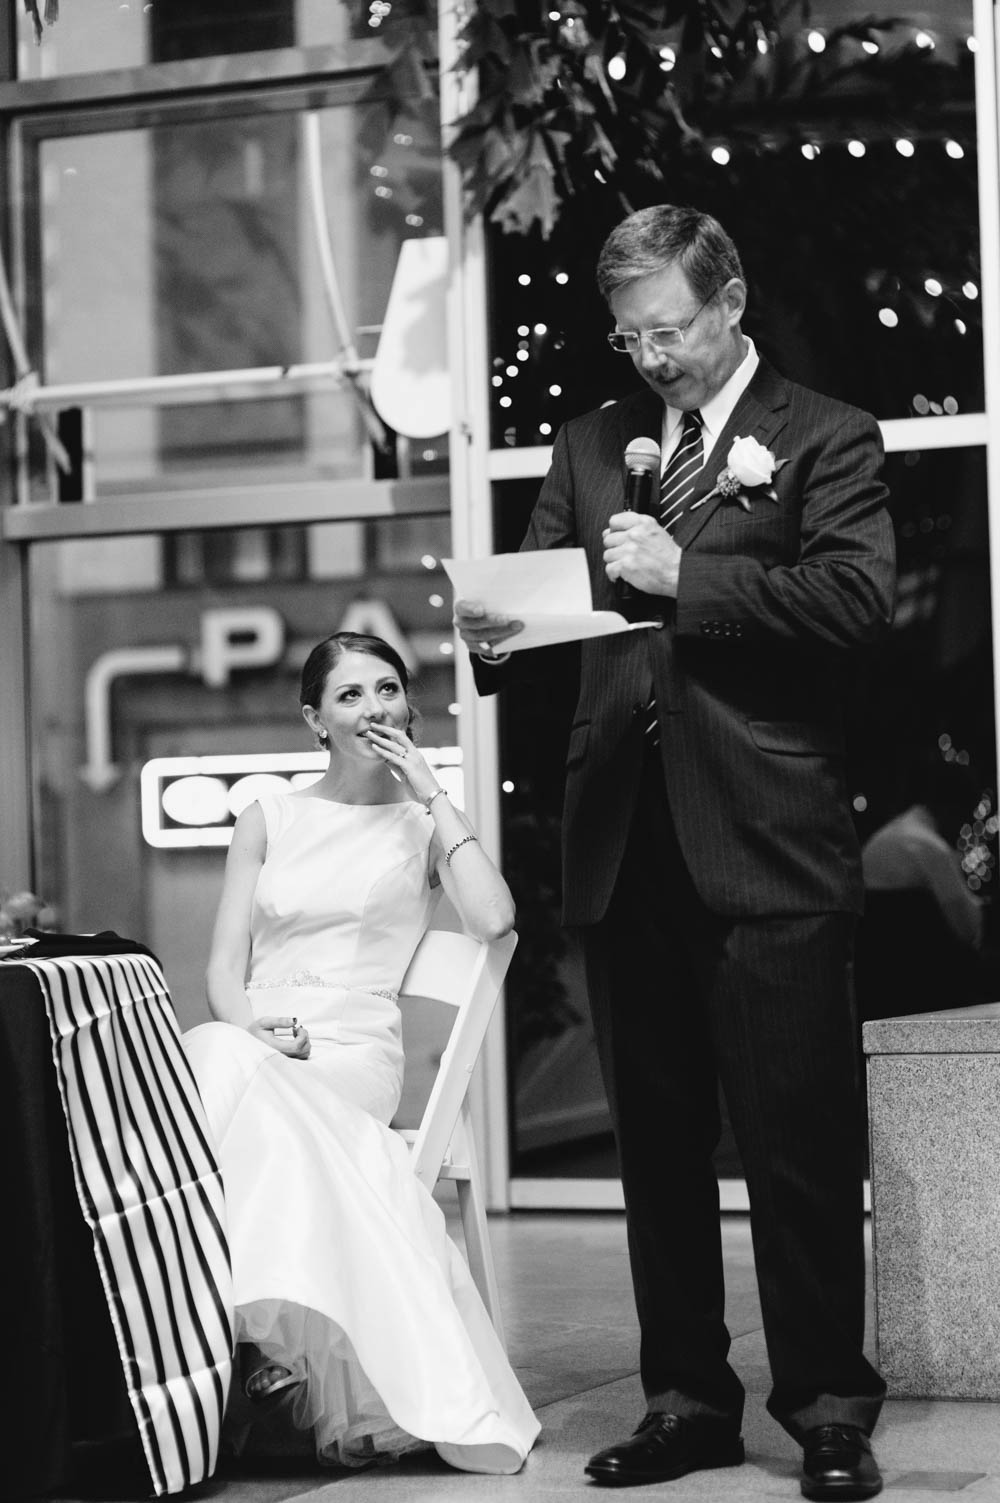 wintergarden-wedding-pittsburgh-126.jpg